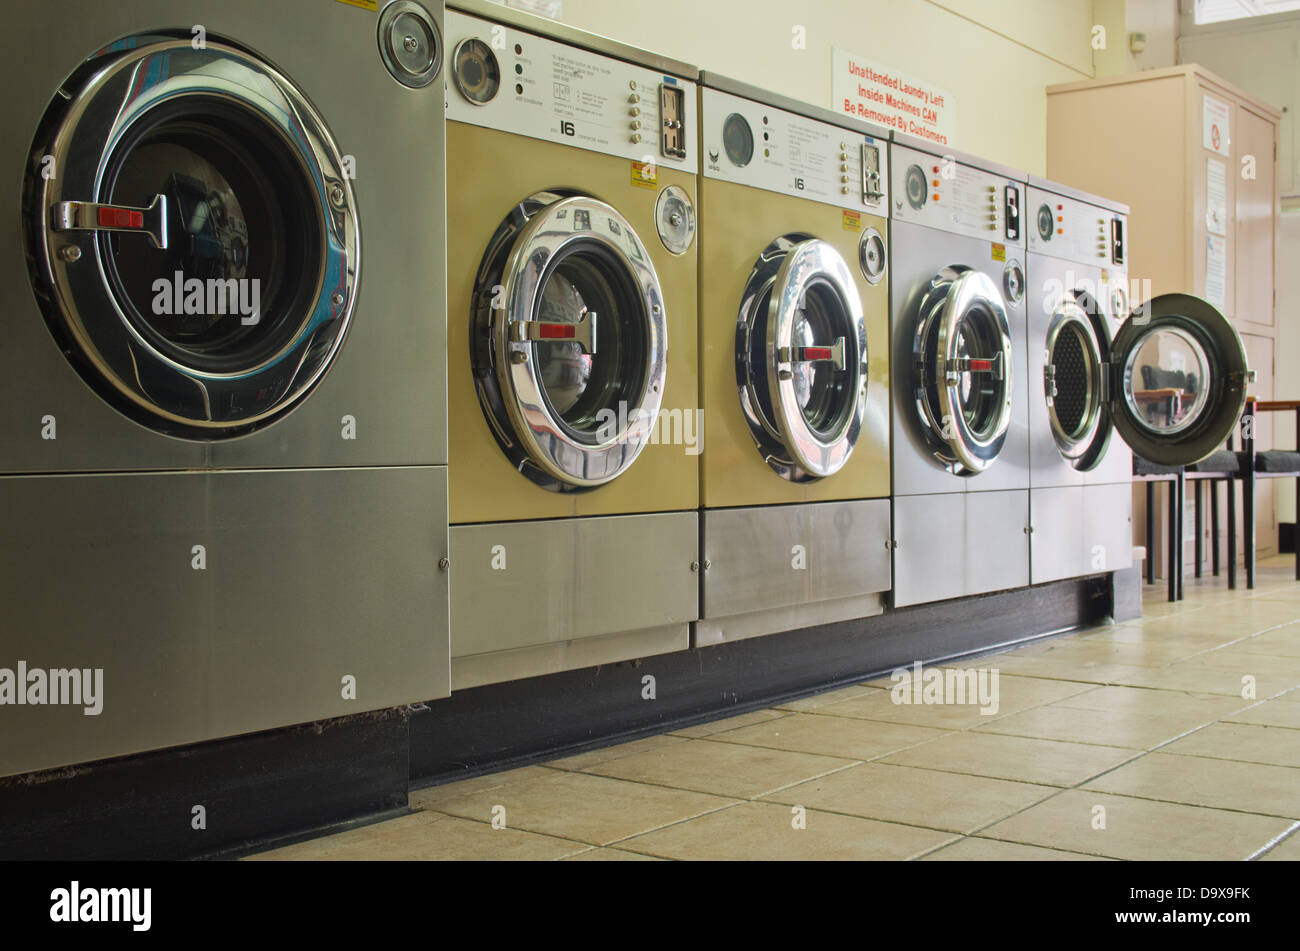 Stainless steel washing machines, coin operated - Stock Image